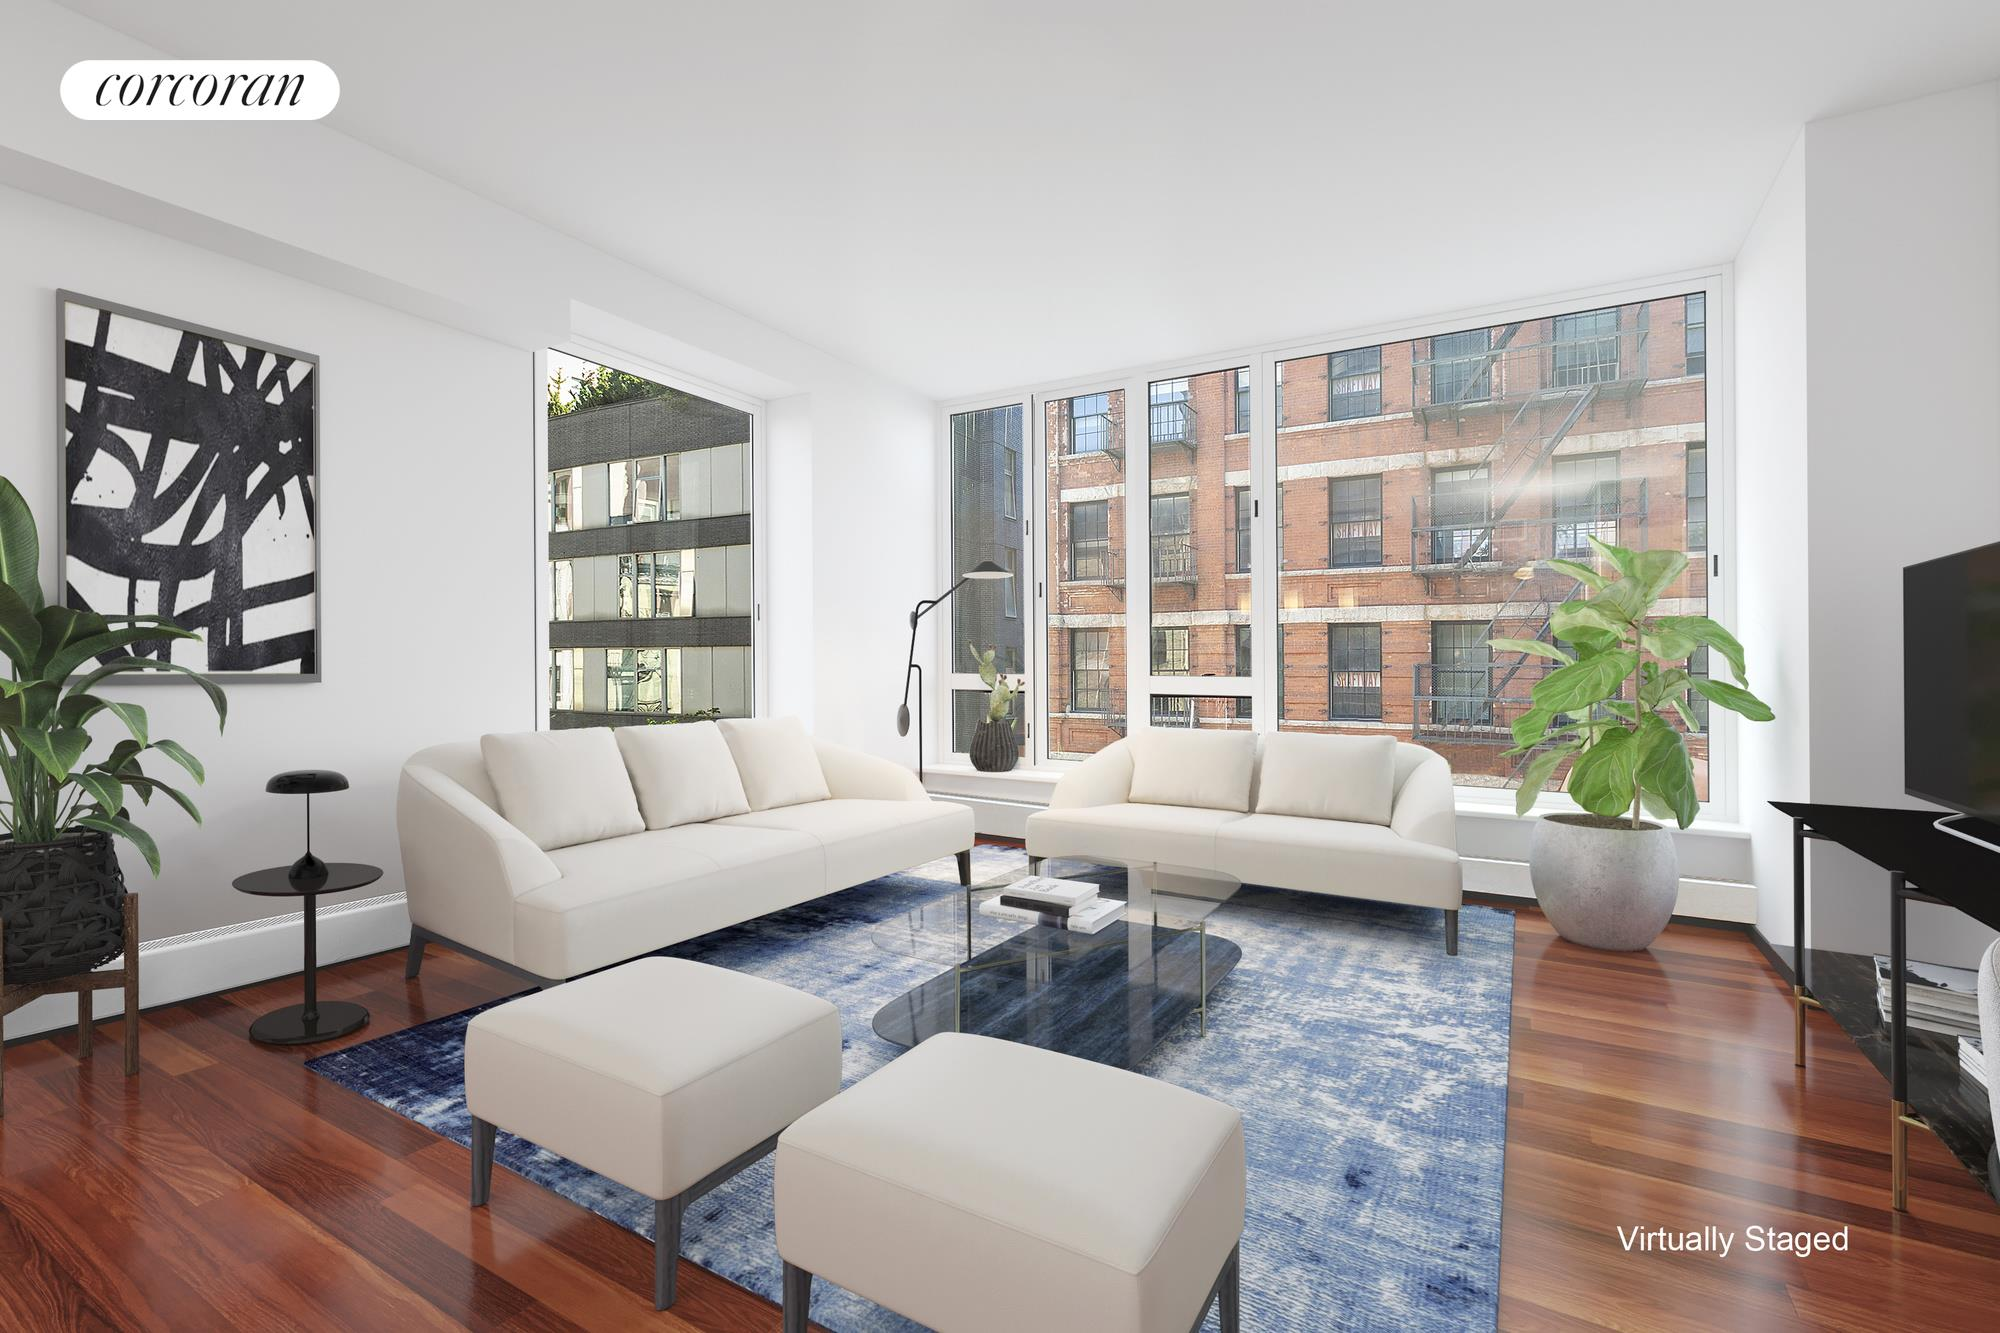 """Apartment 4E at 505 Greenwich Street is an inviting home with modern conveniences and low carrying costs in the heart of Hudson Square. Upon entry, you step into a long, gracious foyer with a walk-in coat closet. The spacious living/dining room, measuring at 26'4"""" x 16'7"""", with both northern and eastern exposures, has lovely views of the prewar red-brick lofts across Renwick Street. The stunning open chef's kitchen features a Sub-Zero refrigerator, Bosch dishwasher, Viking stainless steel range, wine refrigerator, built-in microwave, custom Tanzanian Angire wood cabinetry and gray slate countertops, and an Italian green glass backsplash. Every room in the apartment has been custom-painted by the renowned muralists, Atelier Sineux Frères. The lovely oversized, north-facing master suite features two closets and an ensuite bath with Pietra Bedonia marble floors, cherry cabinets, and a Kohler soaking tub. The queen-sized, north-facing second bedroom is spacious and includes a large walk-in closet. The second bath, just across the hall from the second bedroom, has porcelain tiling, glass accents, and a tub and shower. A laundry room with ample built-in storage is conveniently located in the foyer. Central A/C. A storage unit conveys with the apartment.505 Greenwich Street, designed by Gary Handel & Associates and built in 2004, is a coveted and thoughtfully designed 14-story condominium in Hudson Square. Building amenities include a 24-hour doorman, fitness center, pet spa, a bicycle room, storage for each unit, and an interior courtyard for residents. 505 Greenwich Street is easily accessible to Soho, Tribeca, and the West Village. Hudson River Park, with its running paths, bike paths, green spaces, and gorgeous west-facing views, is just two blocks away. The 1 and ACE trains at Canal Street, as well as the CE trains at Spring Street, are just a few blocks away."""